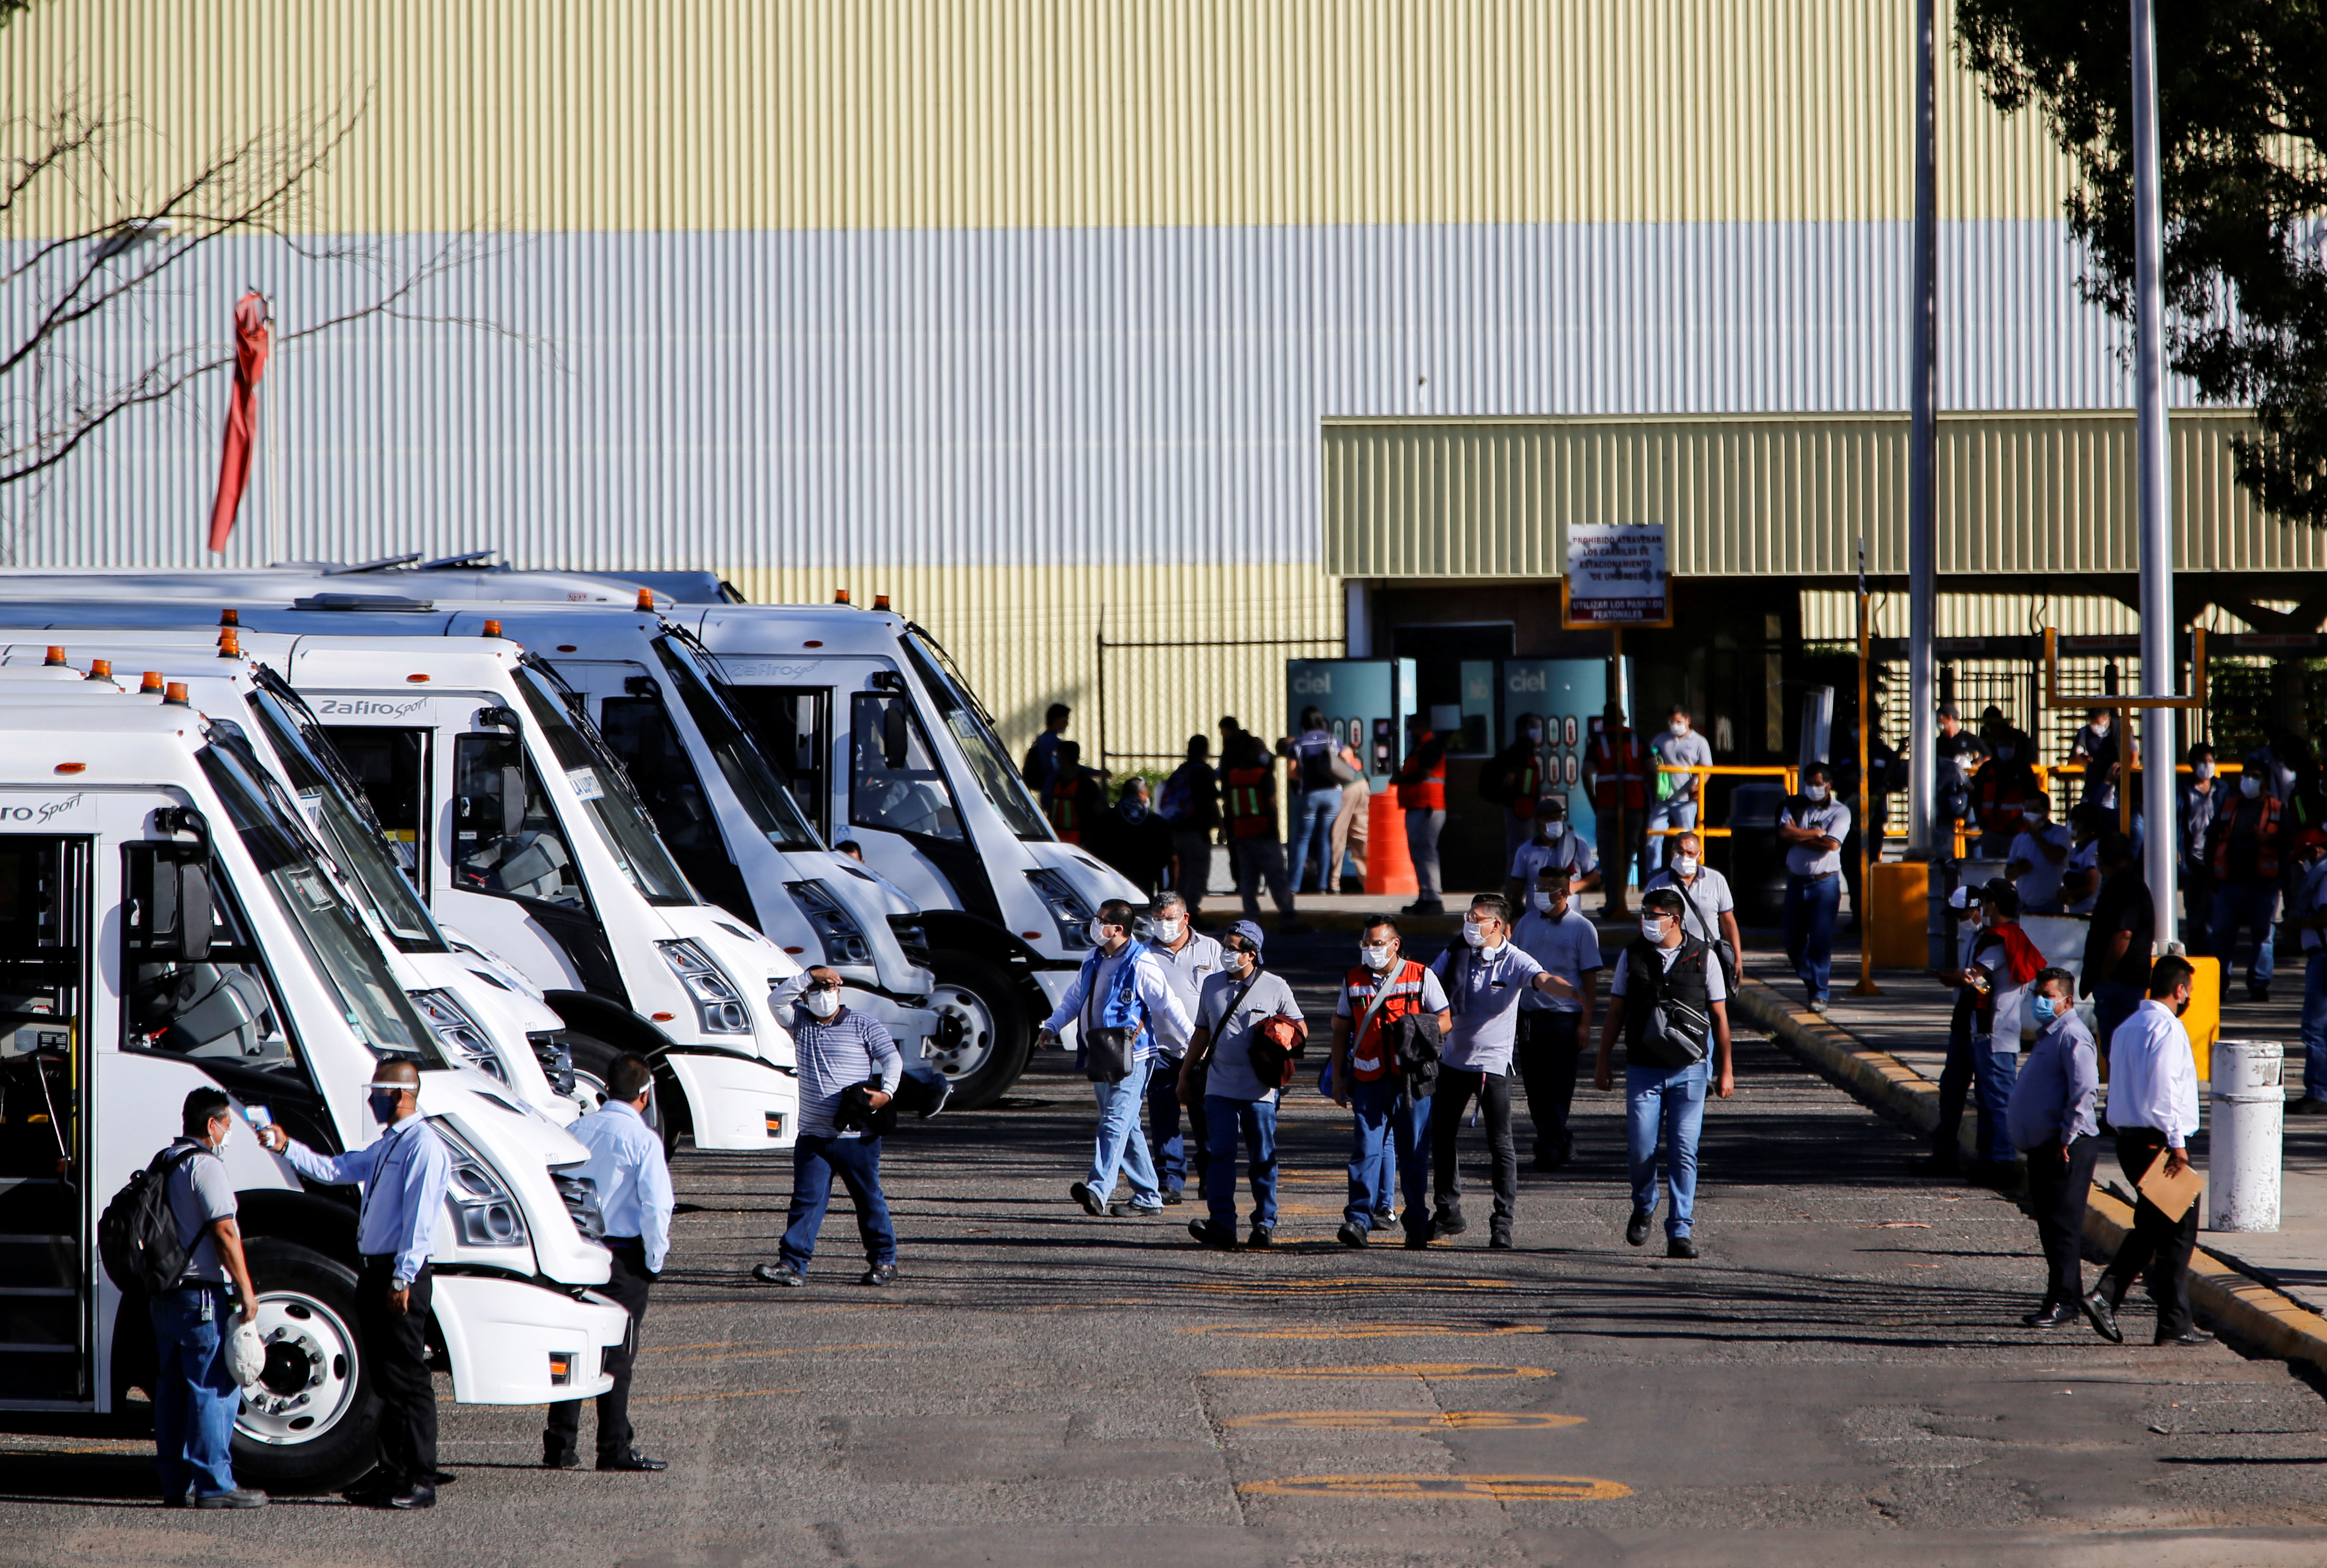 Workers leave after finishing their shift at the GM truck assembly plant as the company gradually restart operations at their Mexican facilities, amid the outbreak of the coronavirus disease (COVID-19), in Silao, Mexico May 22, 2020. REUTERS/Sergio Maldonado